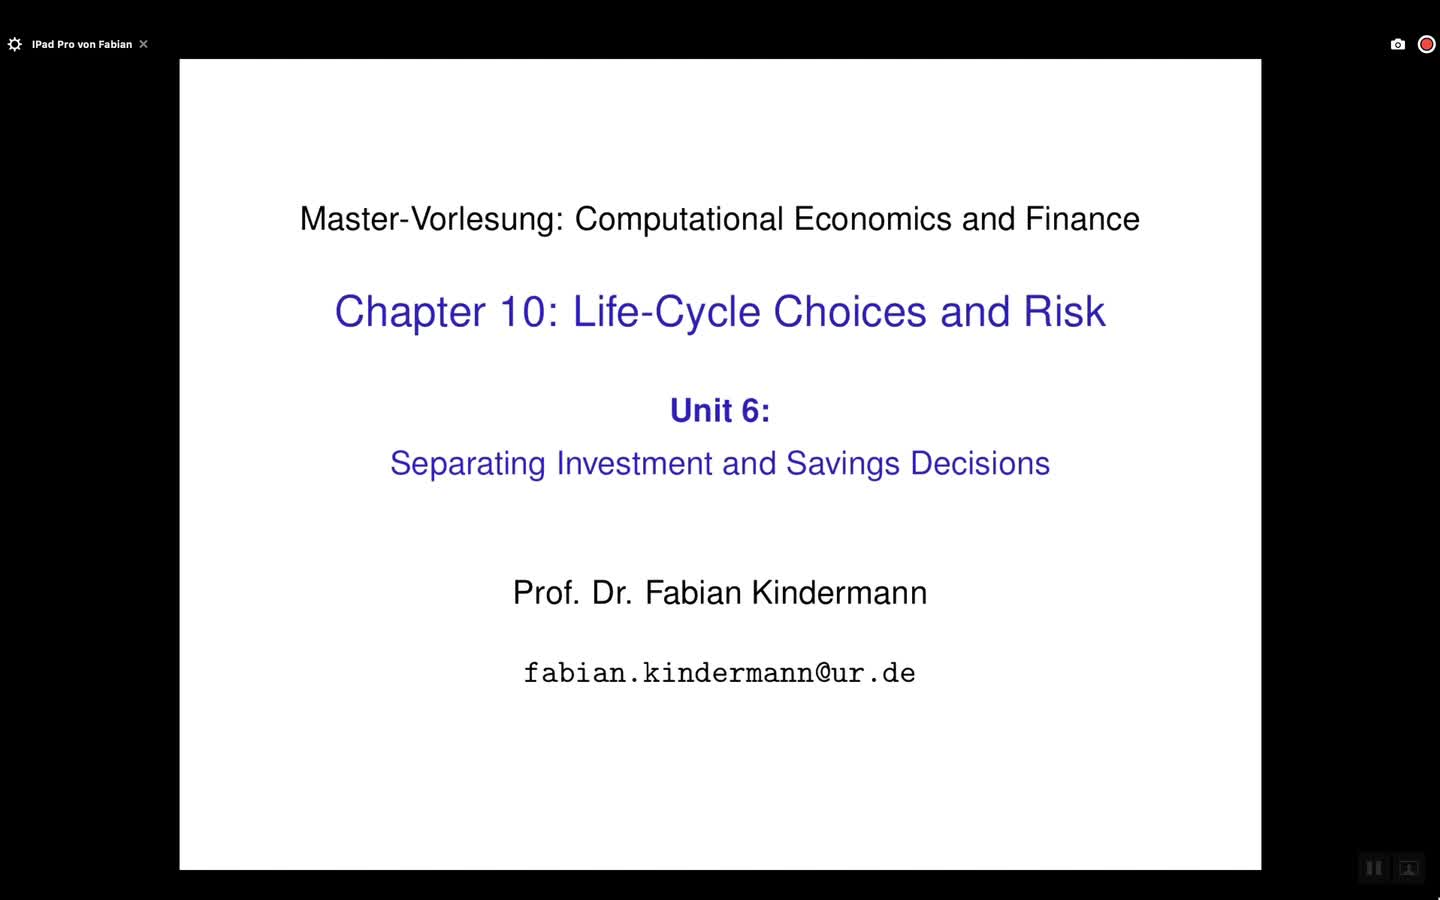 Chapter 10 - Unit 6 - Separating Investment and Savings Decisions